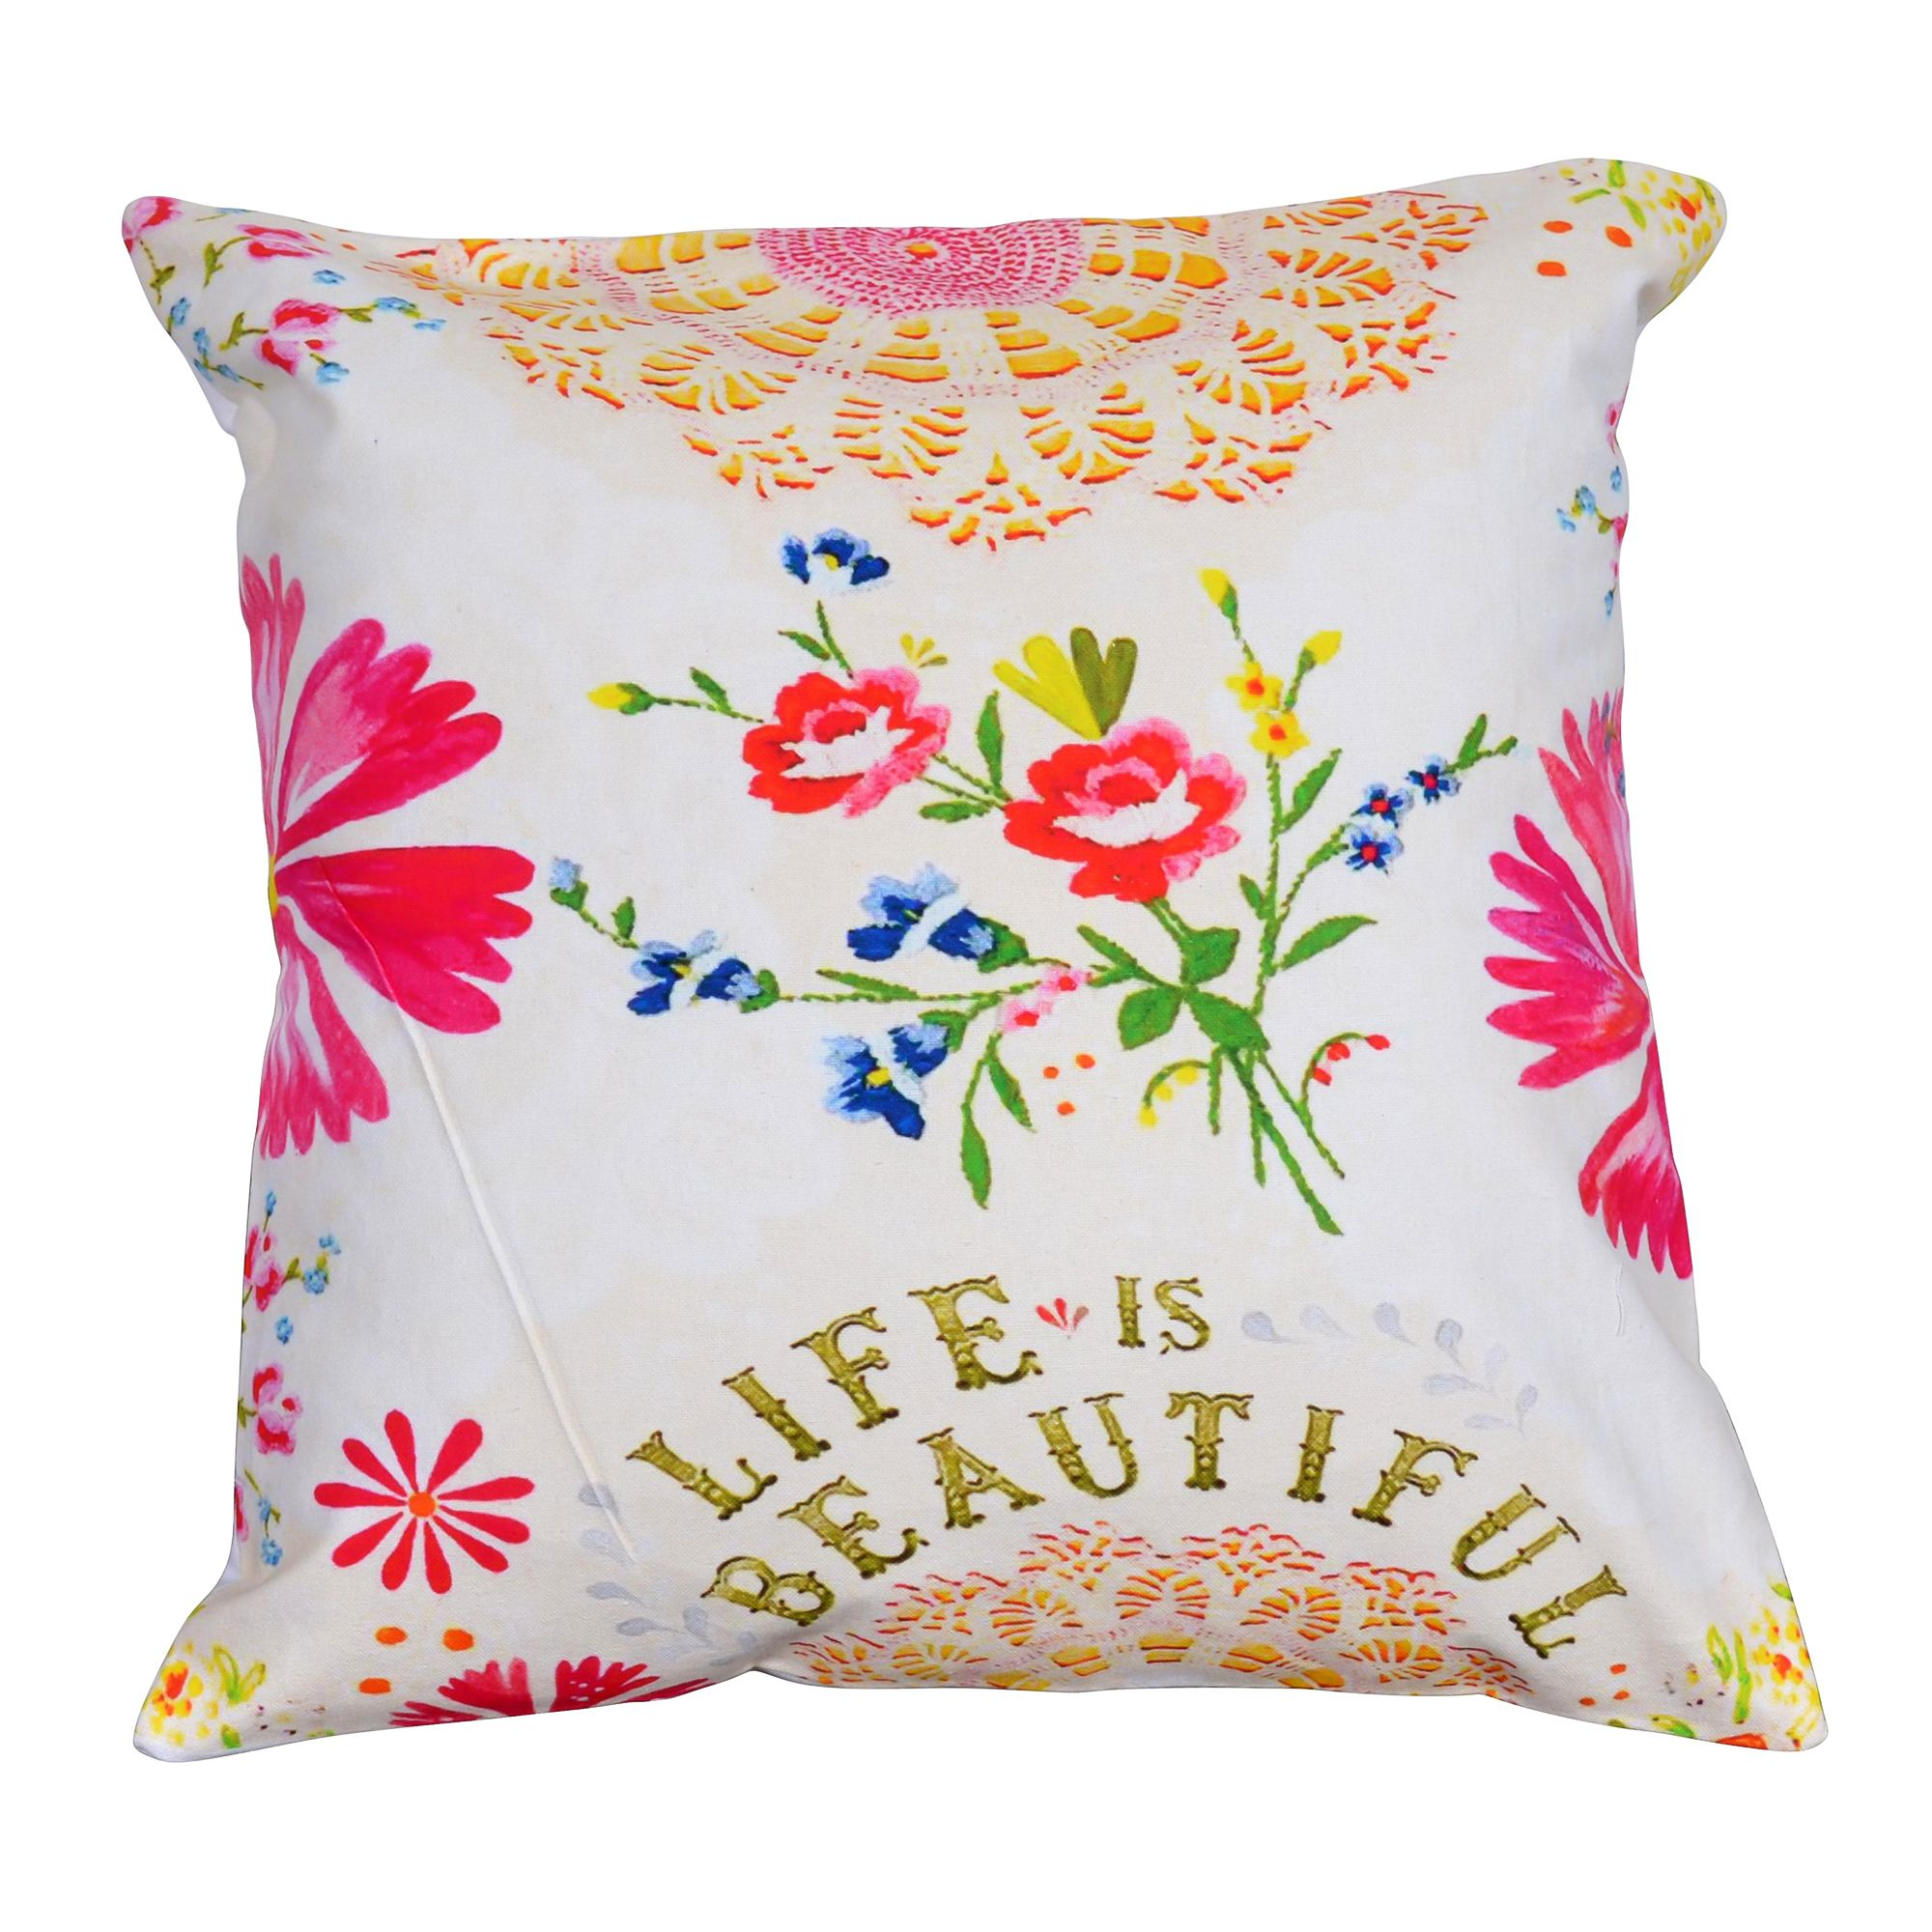 "Life is Beautiful 16"" Digital Print Cushion Cover"